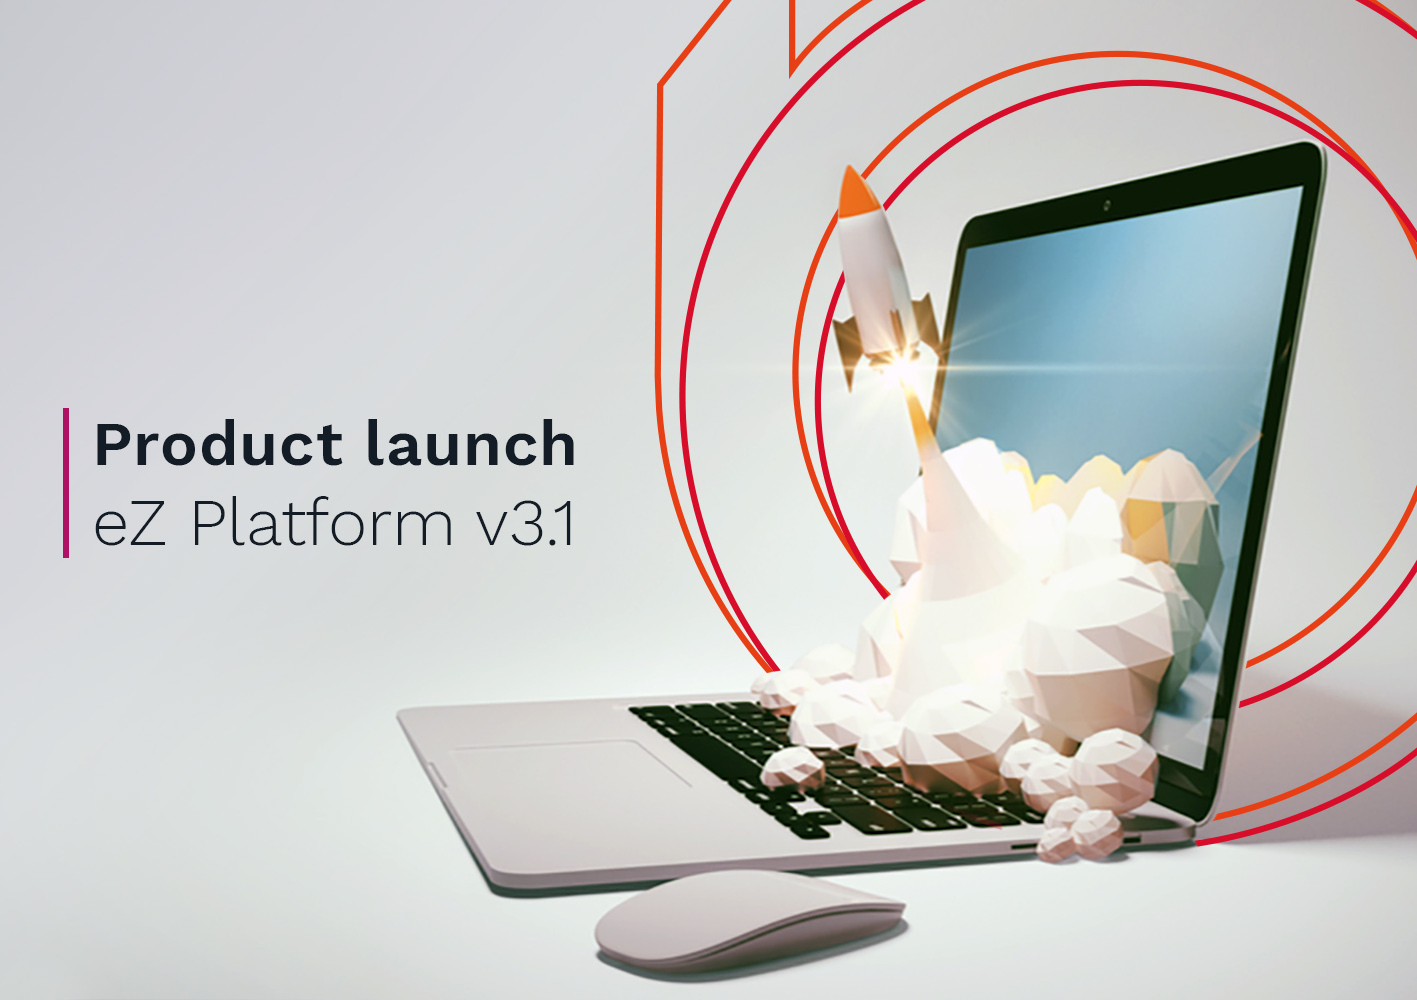 Product Launch: Discover eZ Platform v3.1